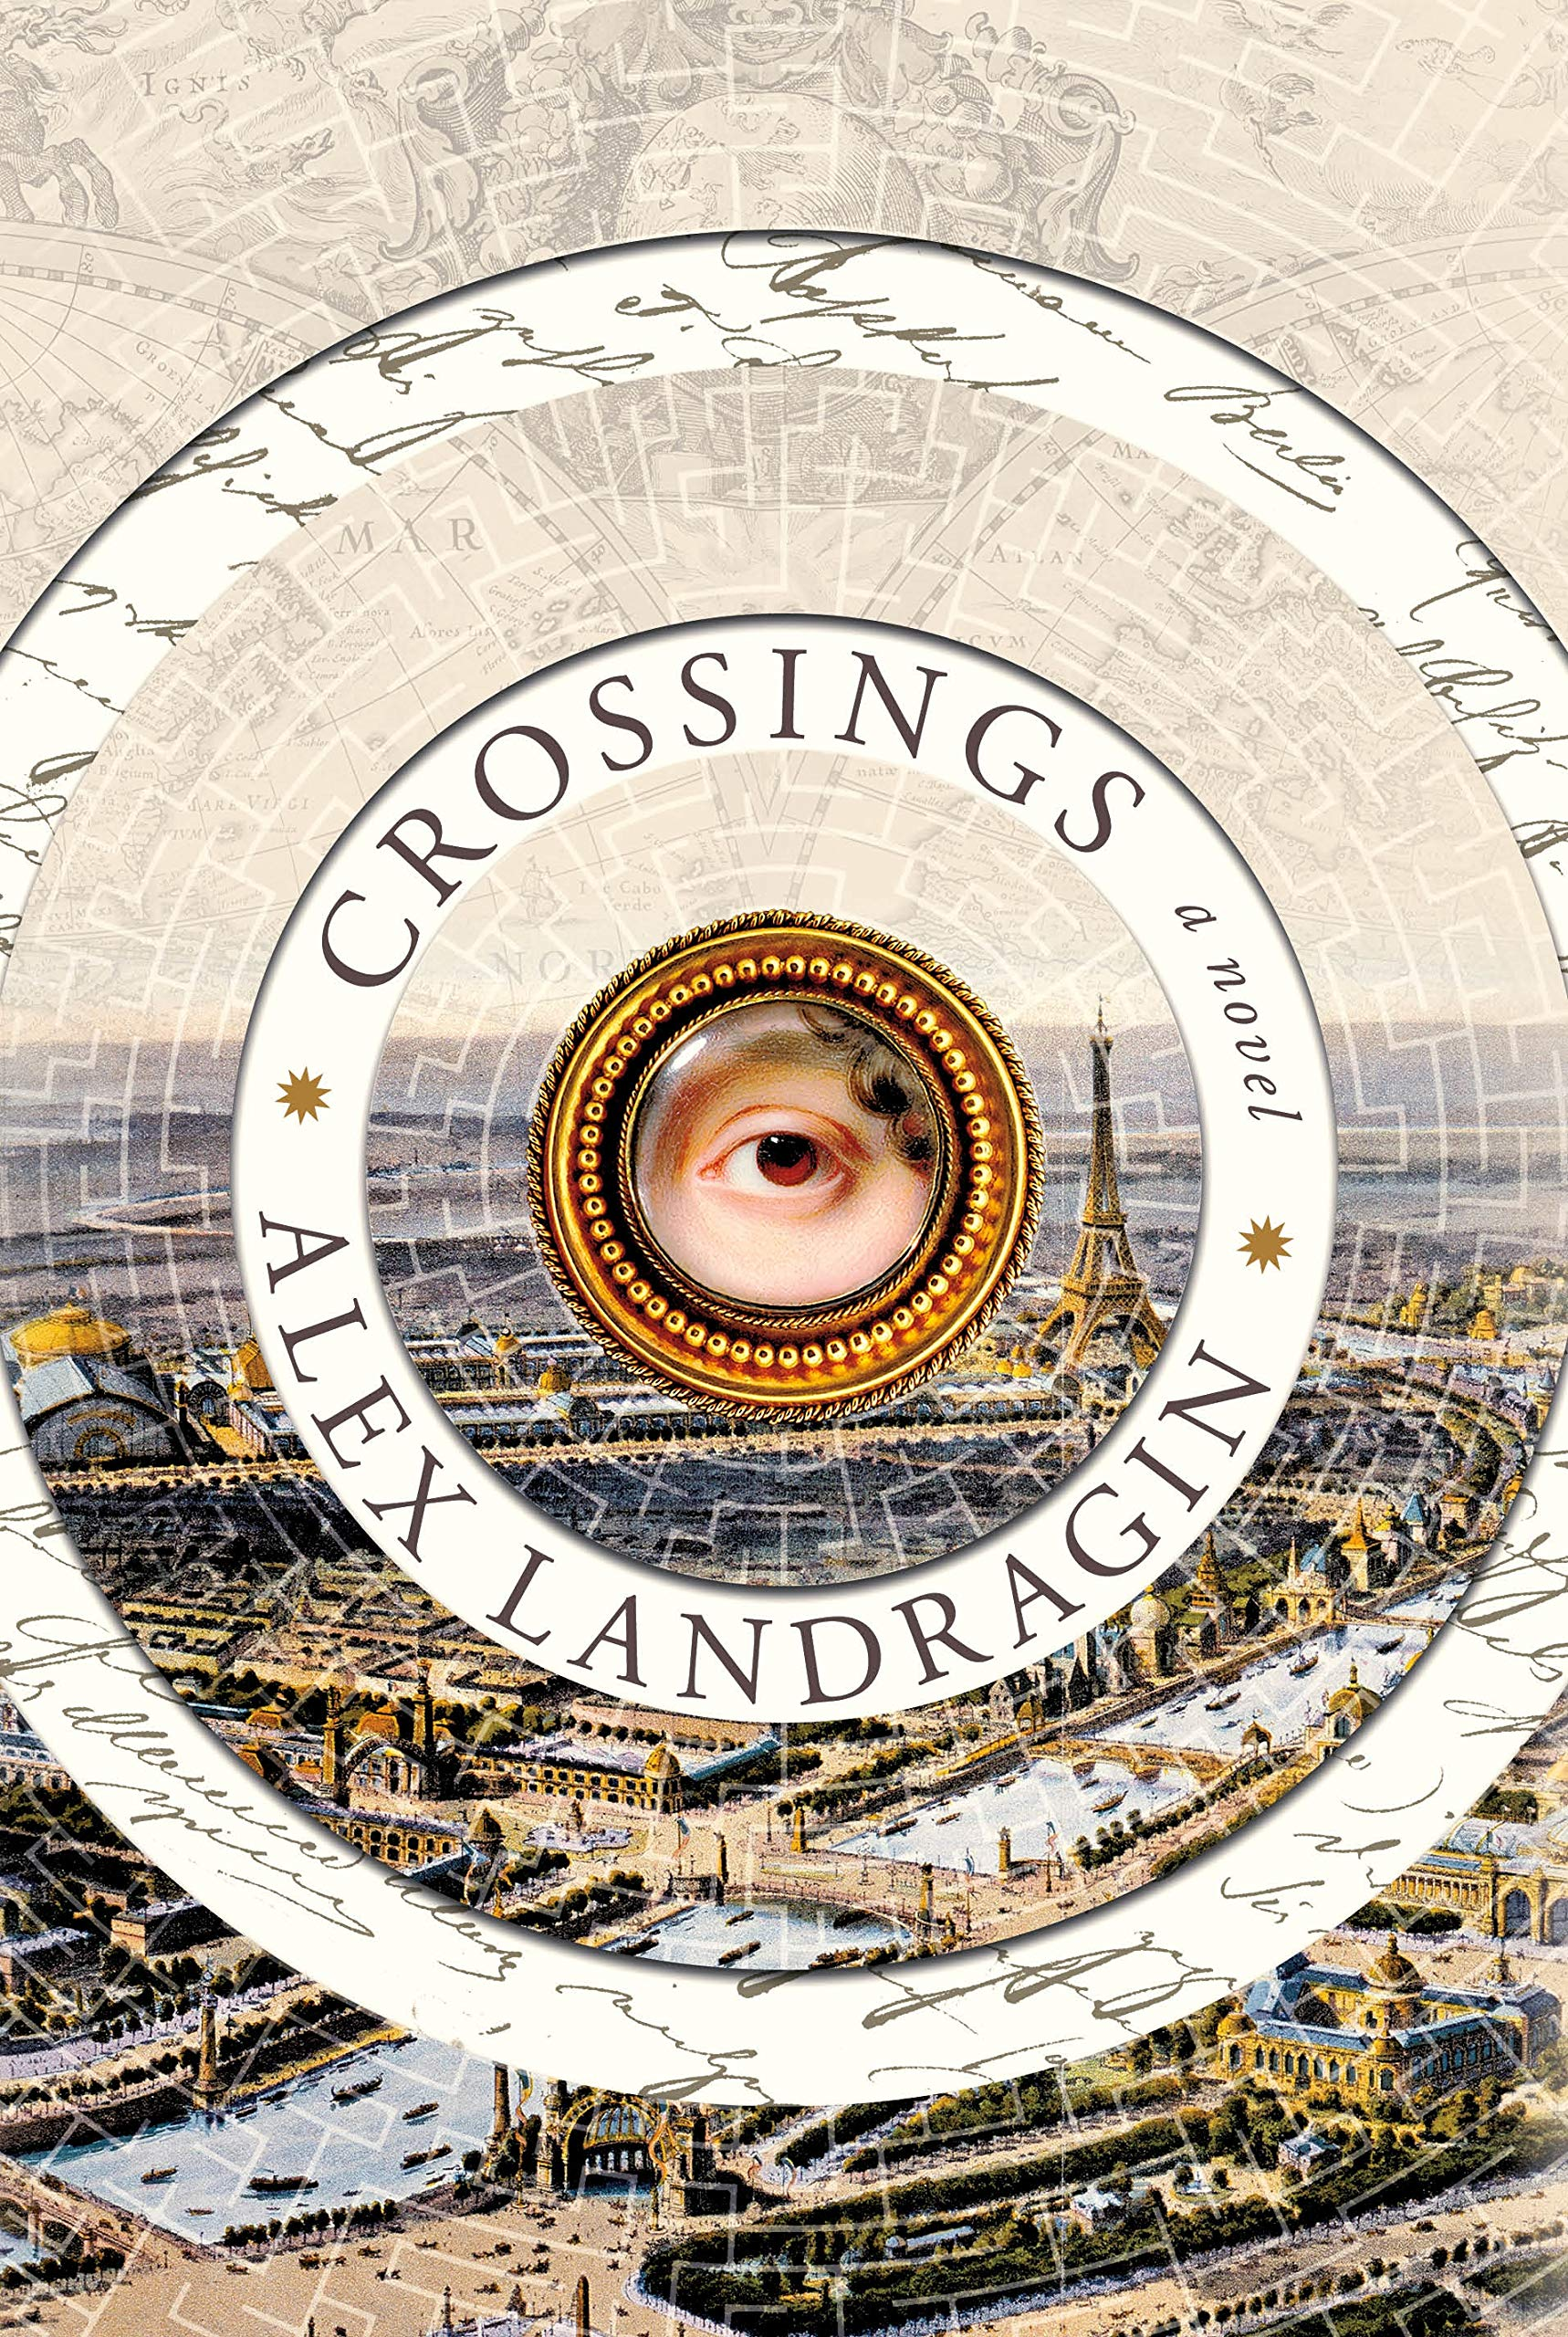 Amazon.com: Crossings: A Novel (9781250259042): Landragin, Alex: Books